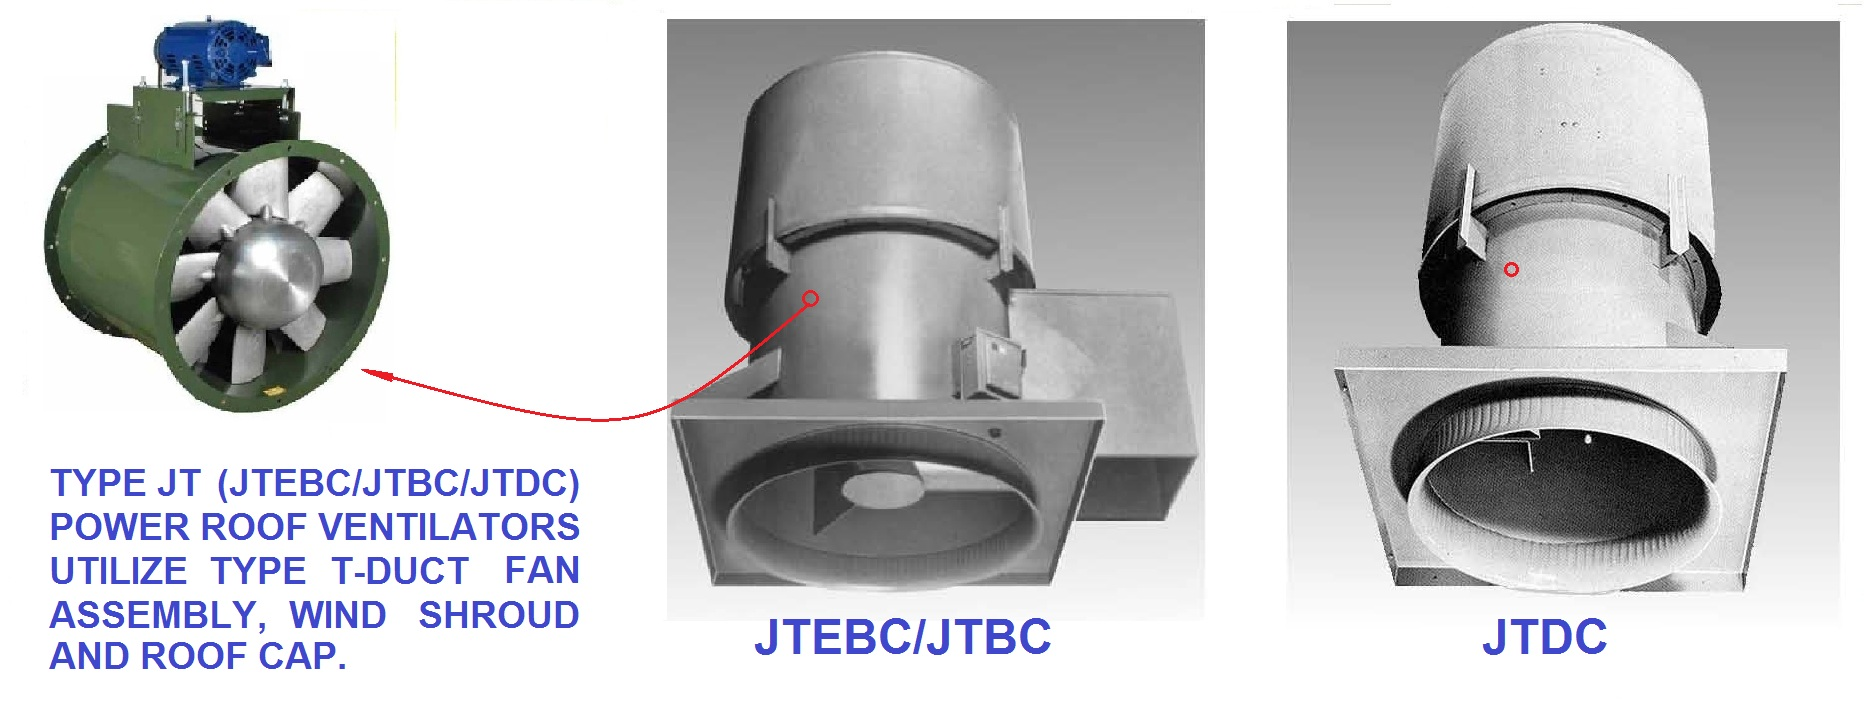 JTBC Belt Drive Up Blast Power Roof Ventilator